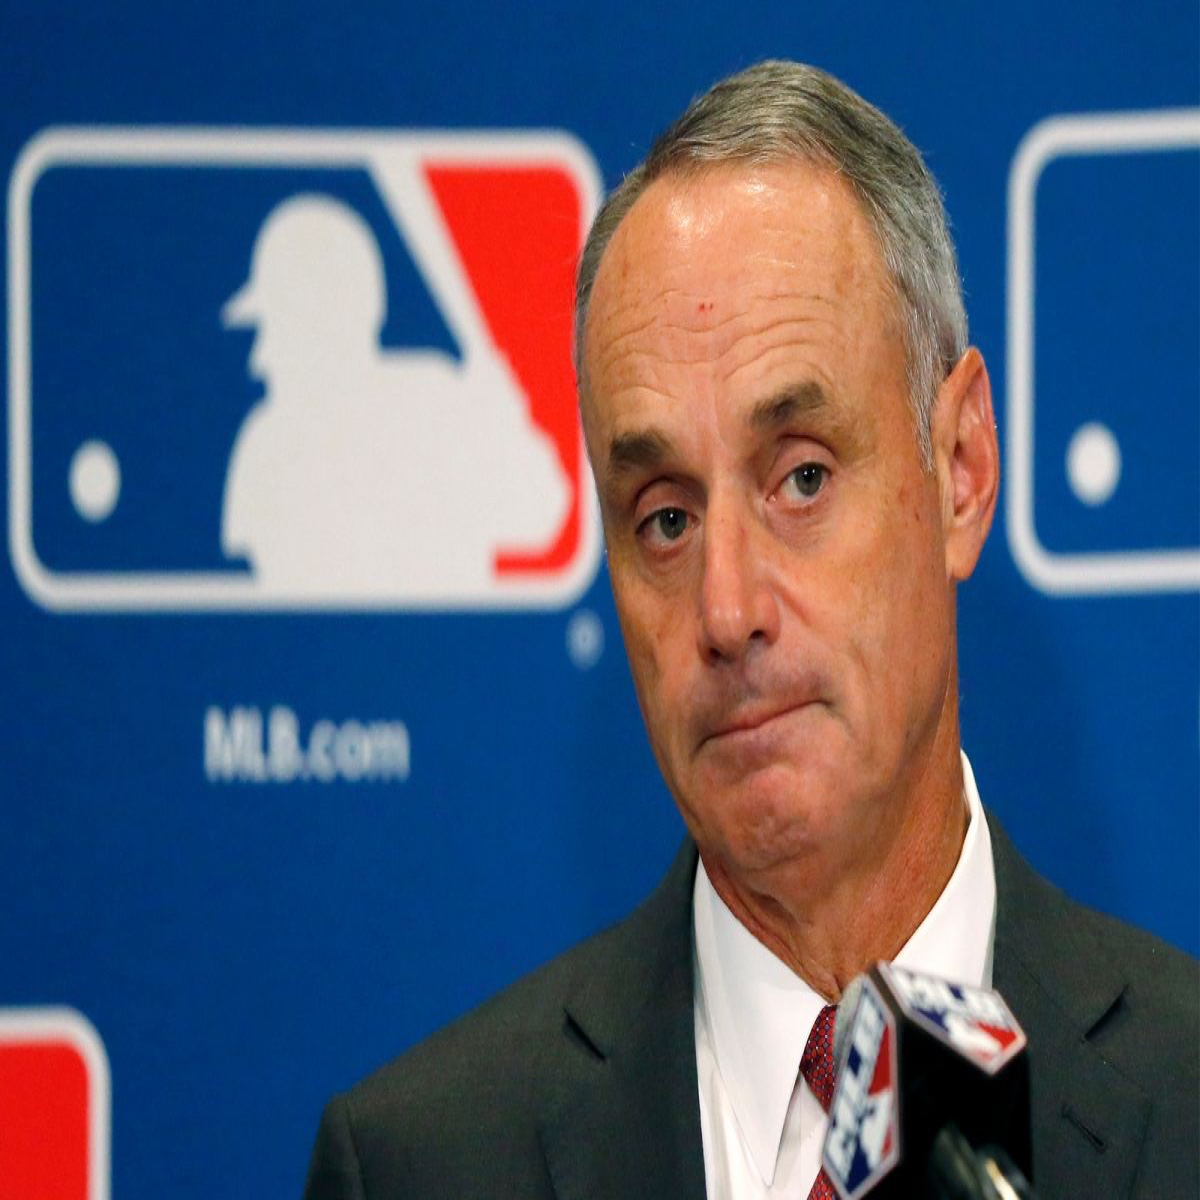 Did Rob Manfred Rig Game 6?